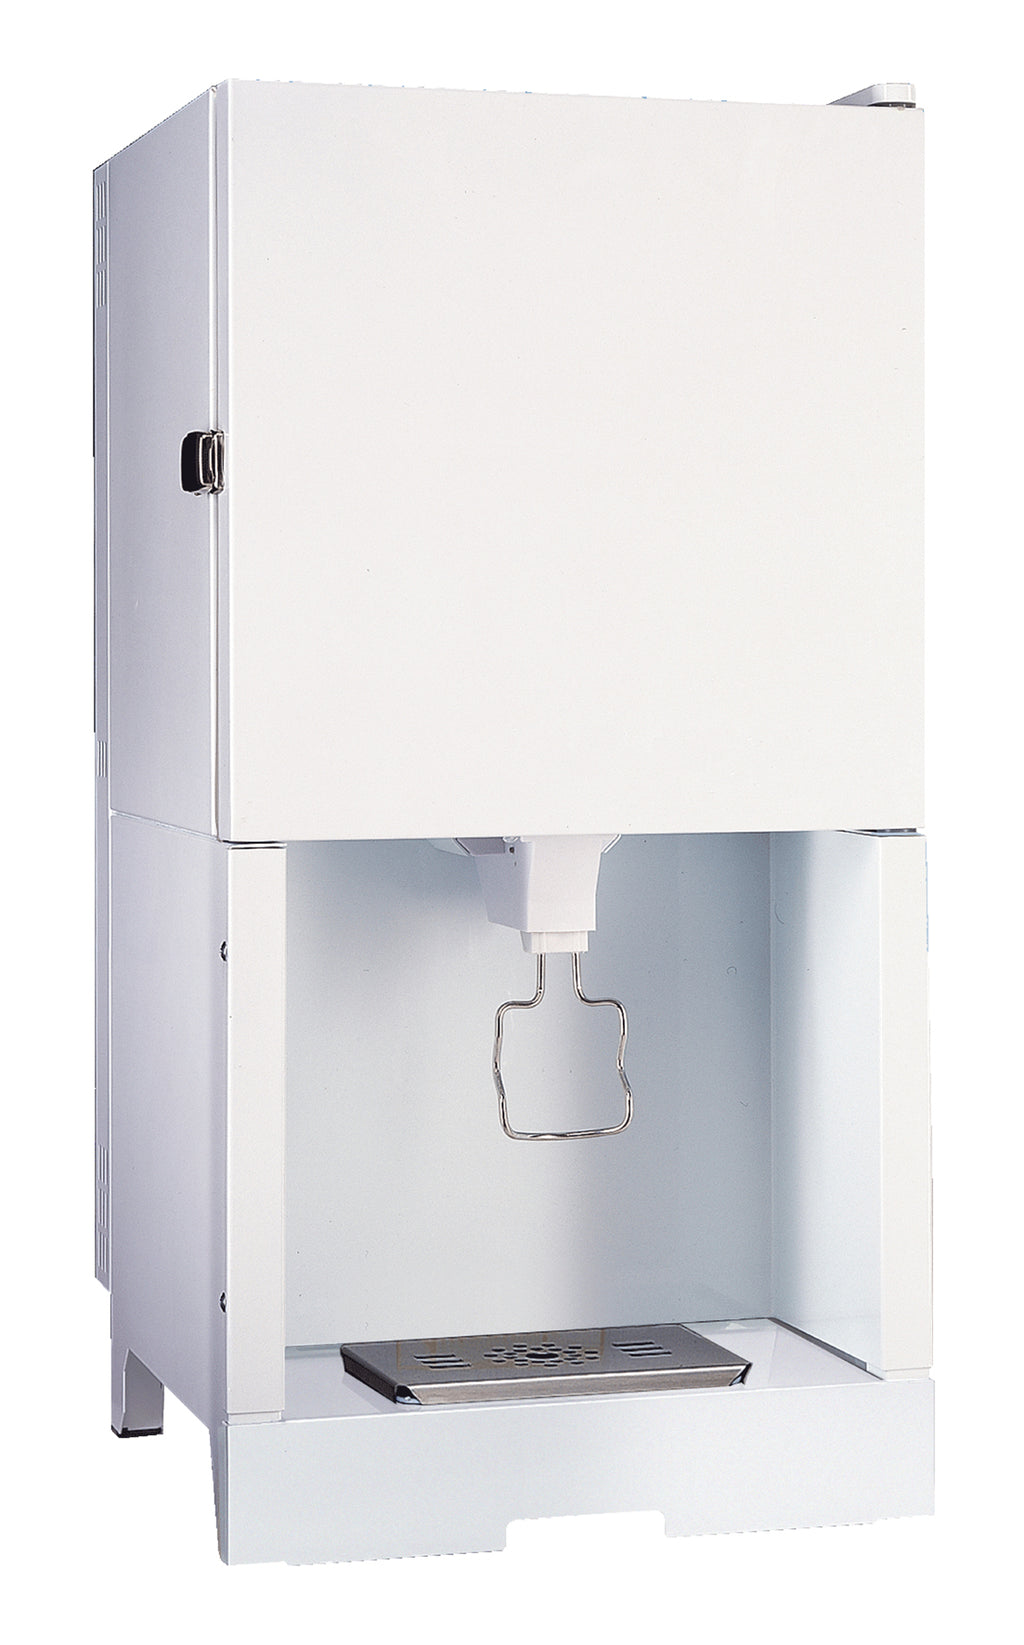 Autonumis 3 Gallon Dispenser White : UGC00002